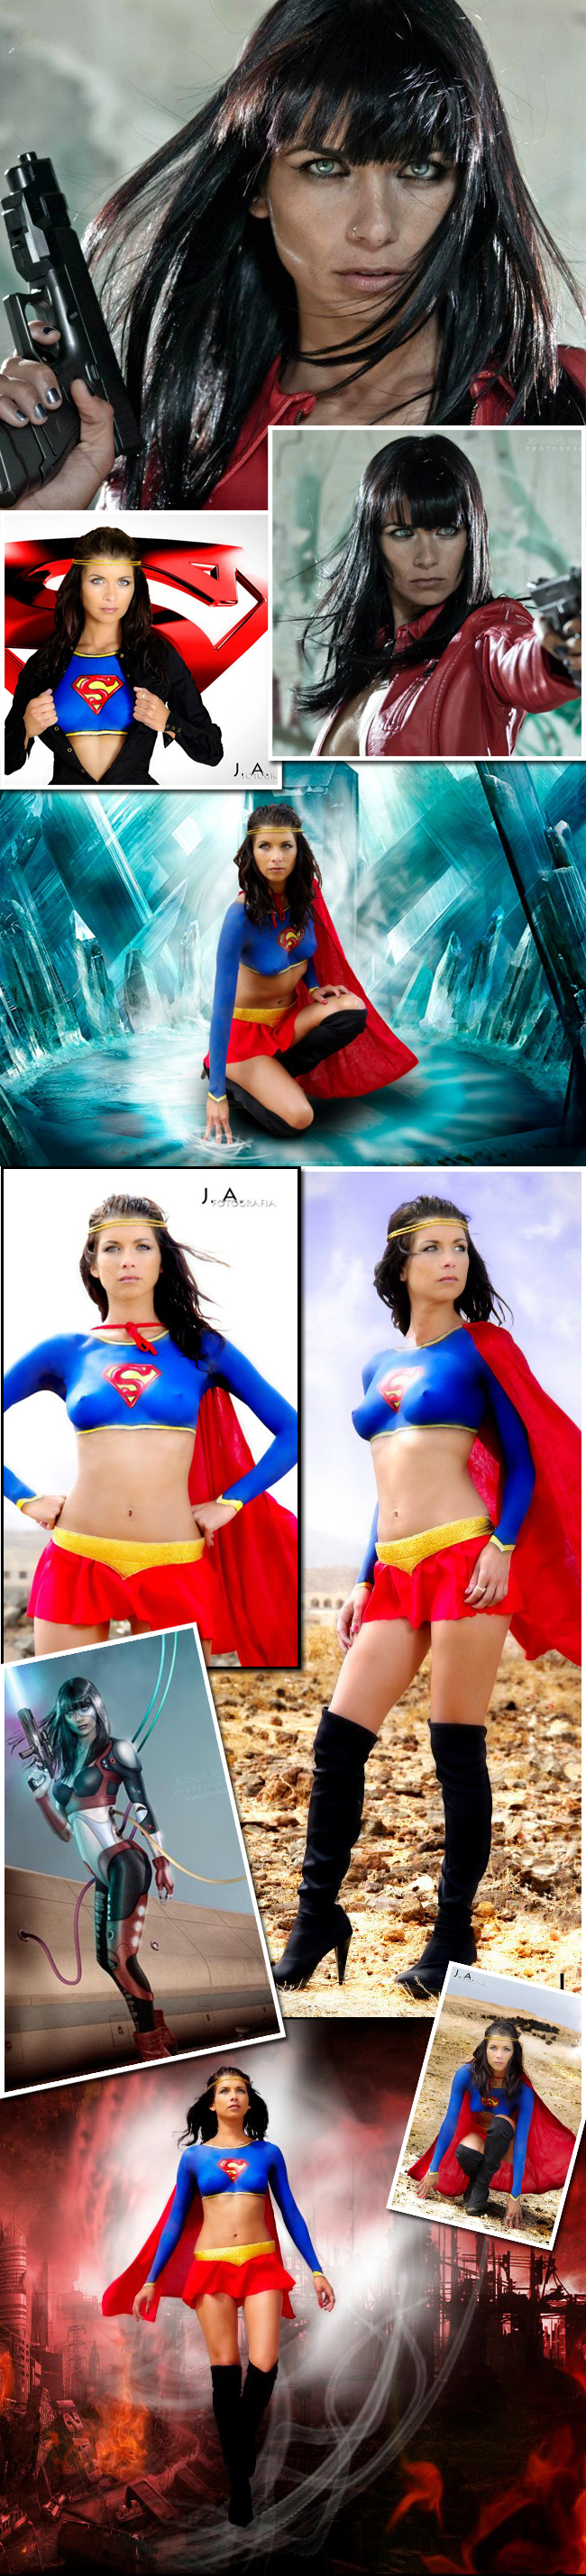 super heroes heroinas woman girl body painting